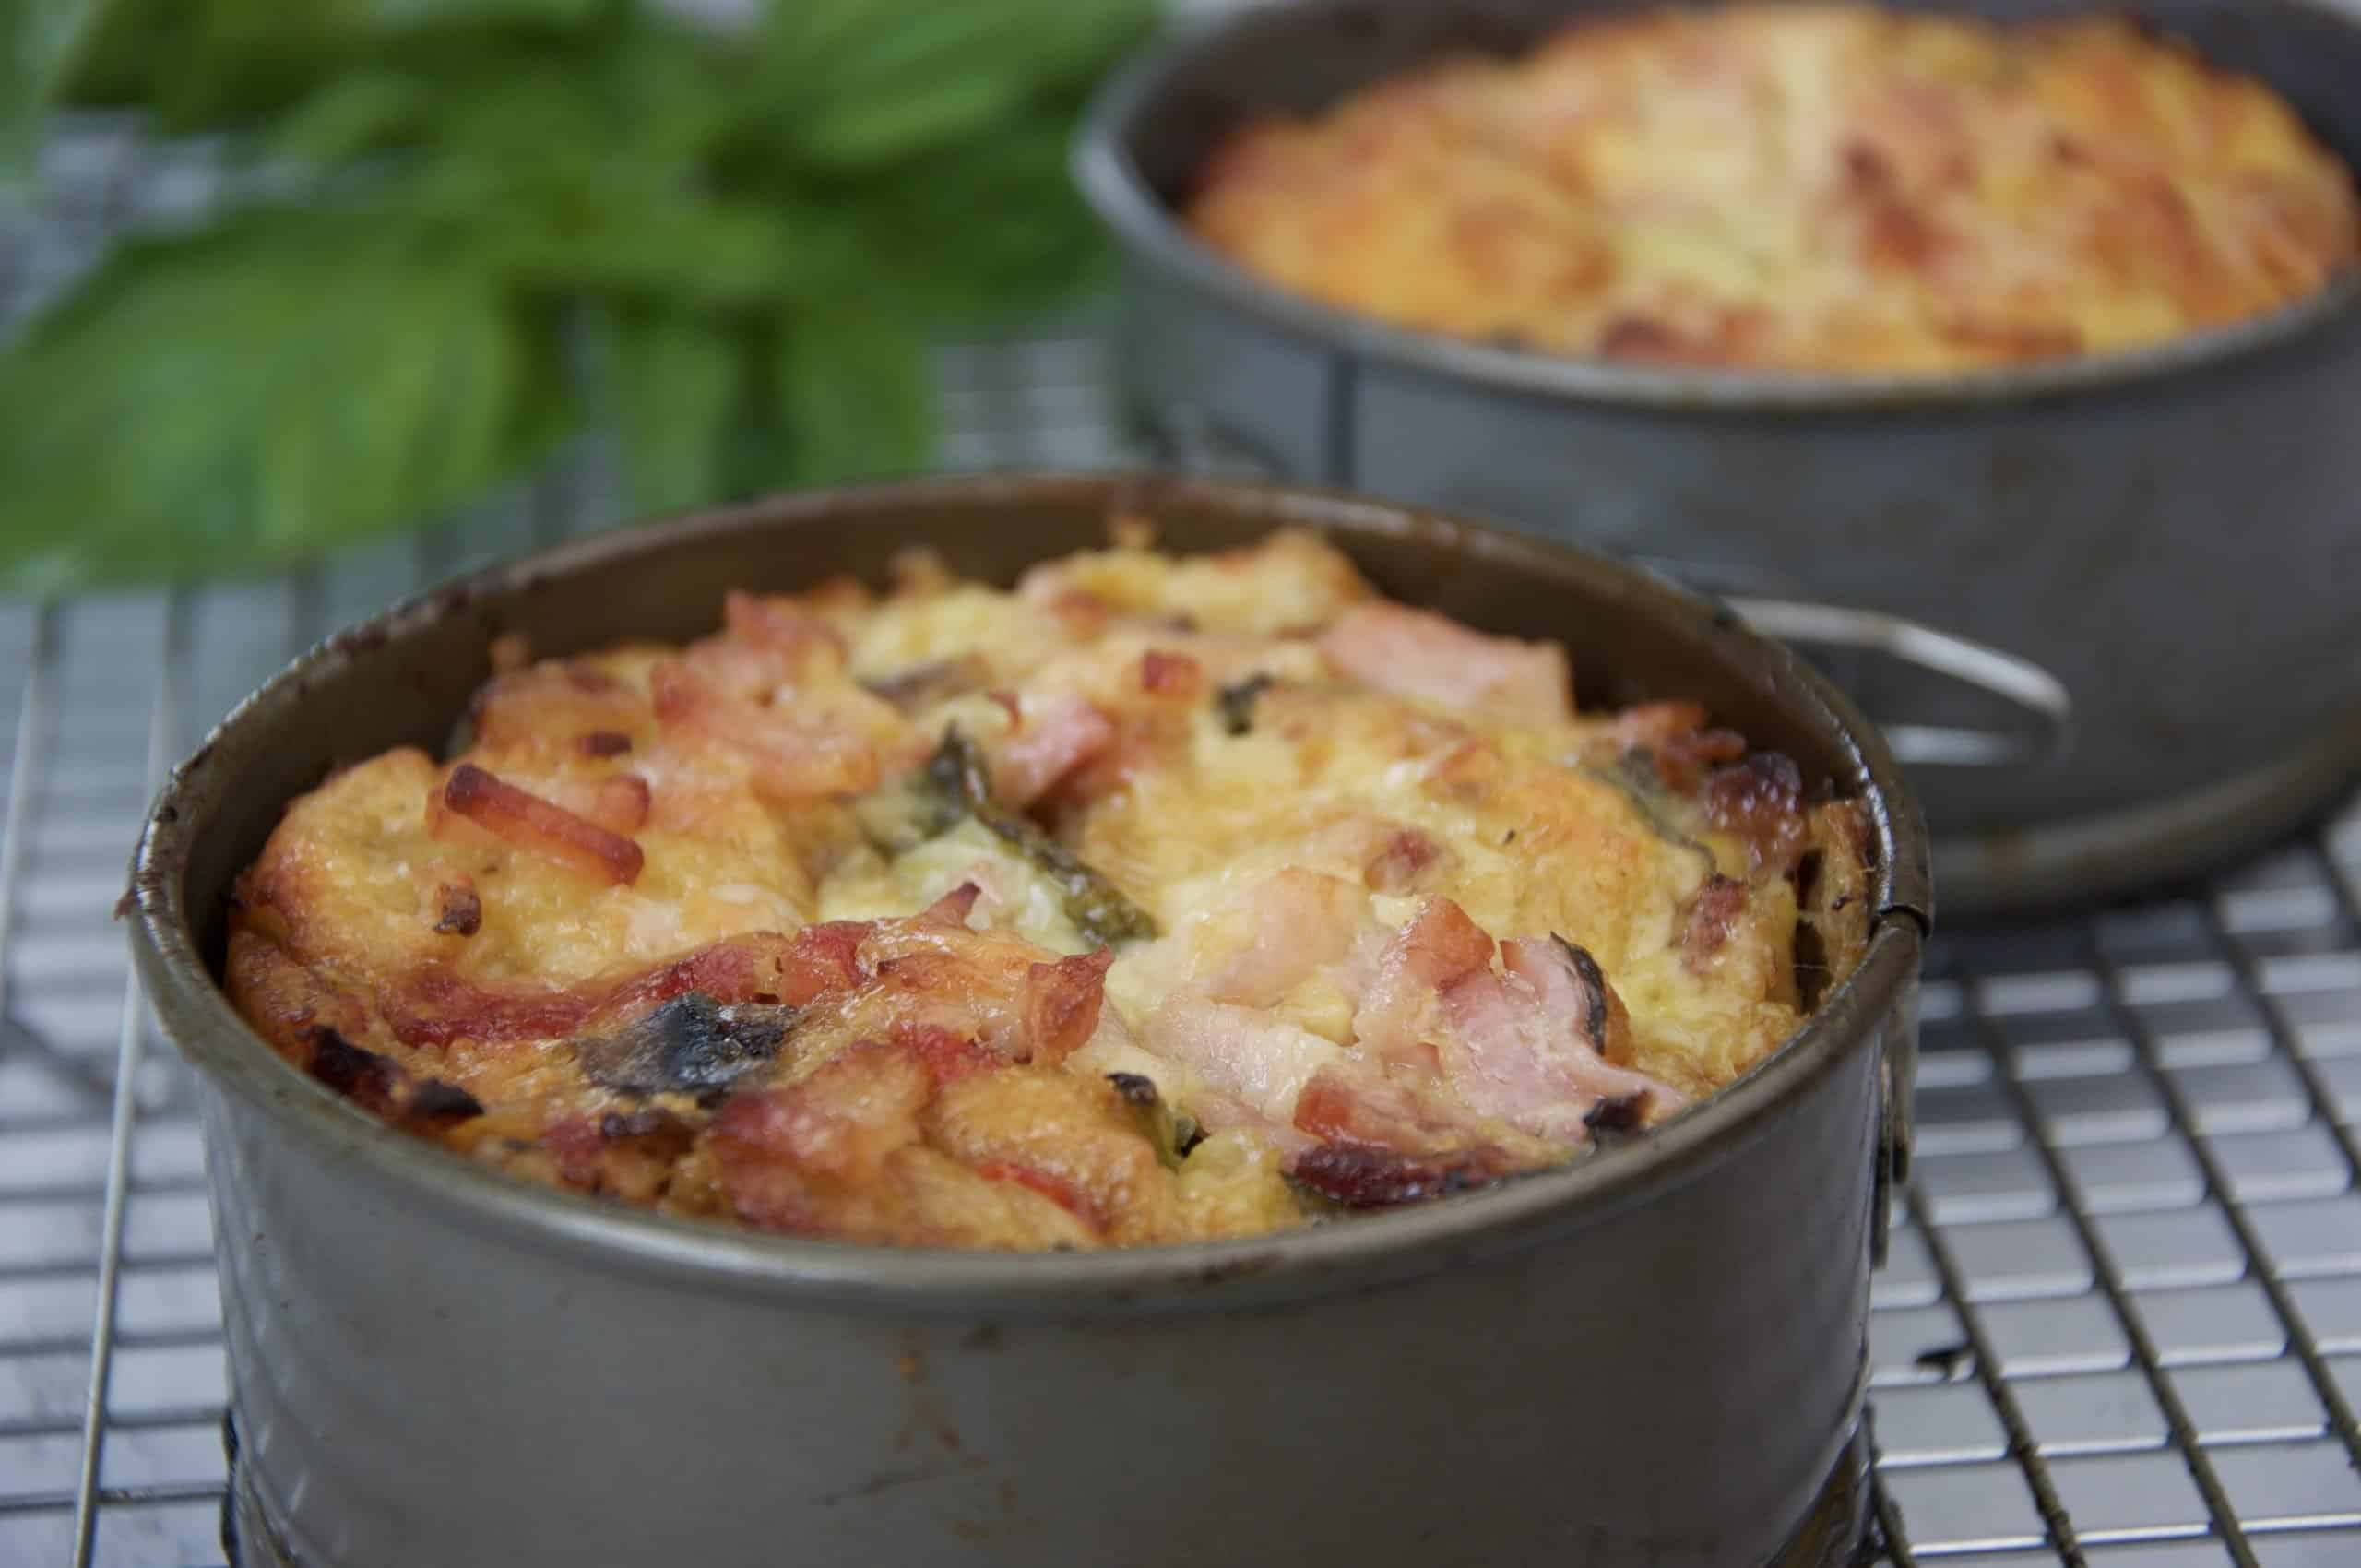 Best breakfast strata - casserole cooling on cake rake with basil in background